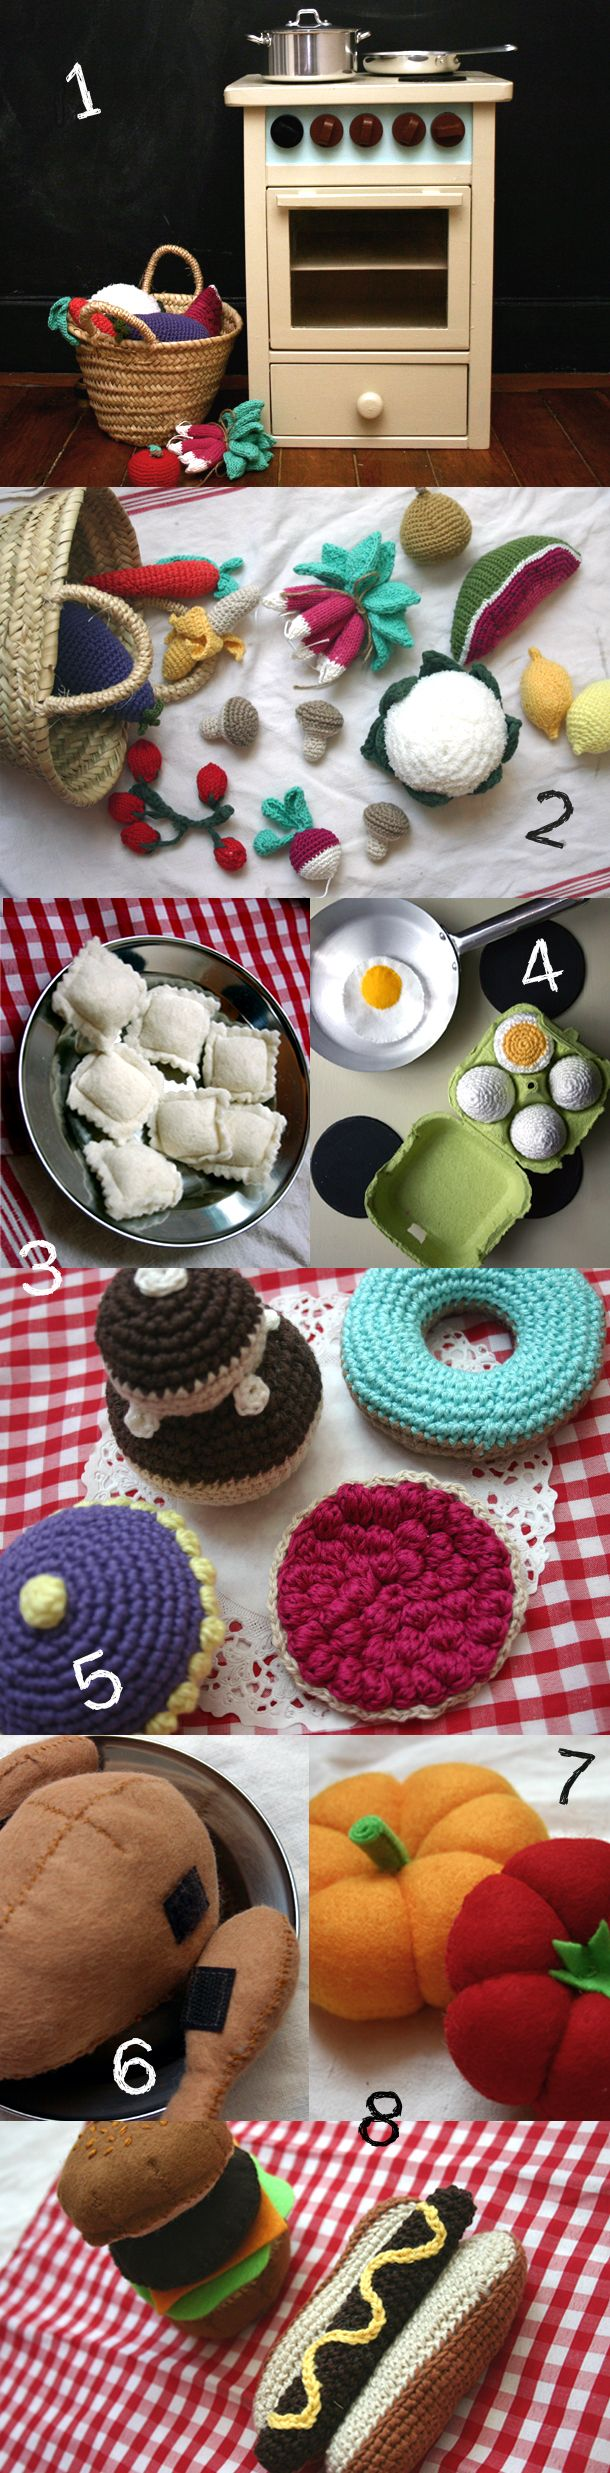 Here is a list of links to tutorials to make these adorable things